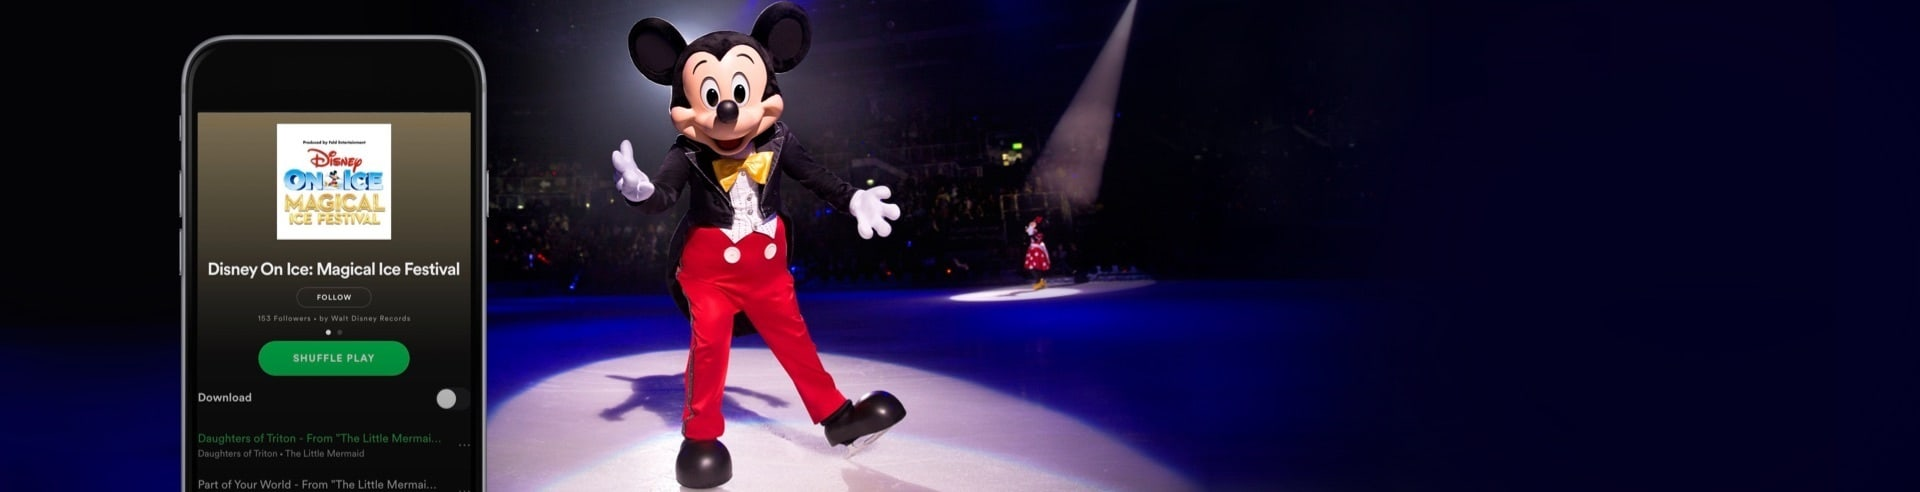 Listen now on Spotify to the Disney On Ice: Magical Ice Festival Playlist